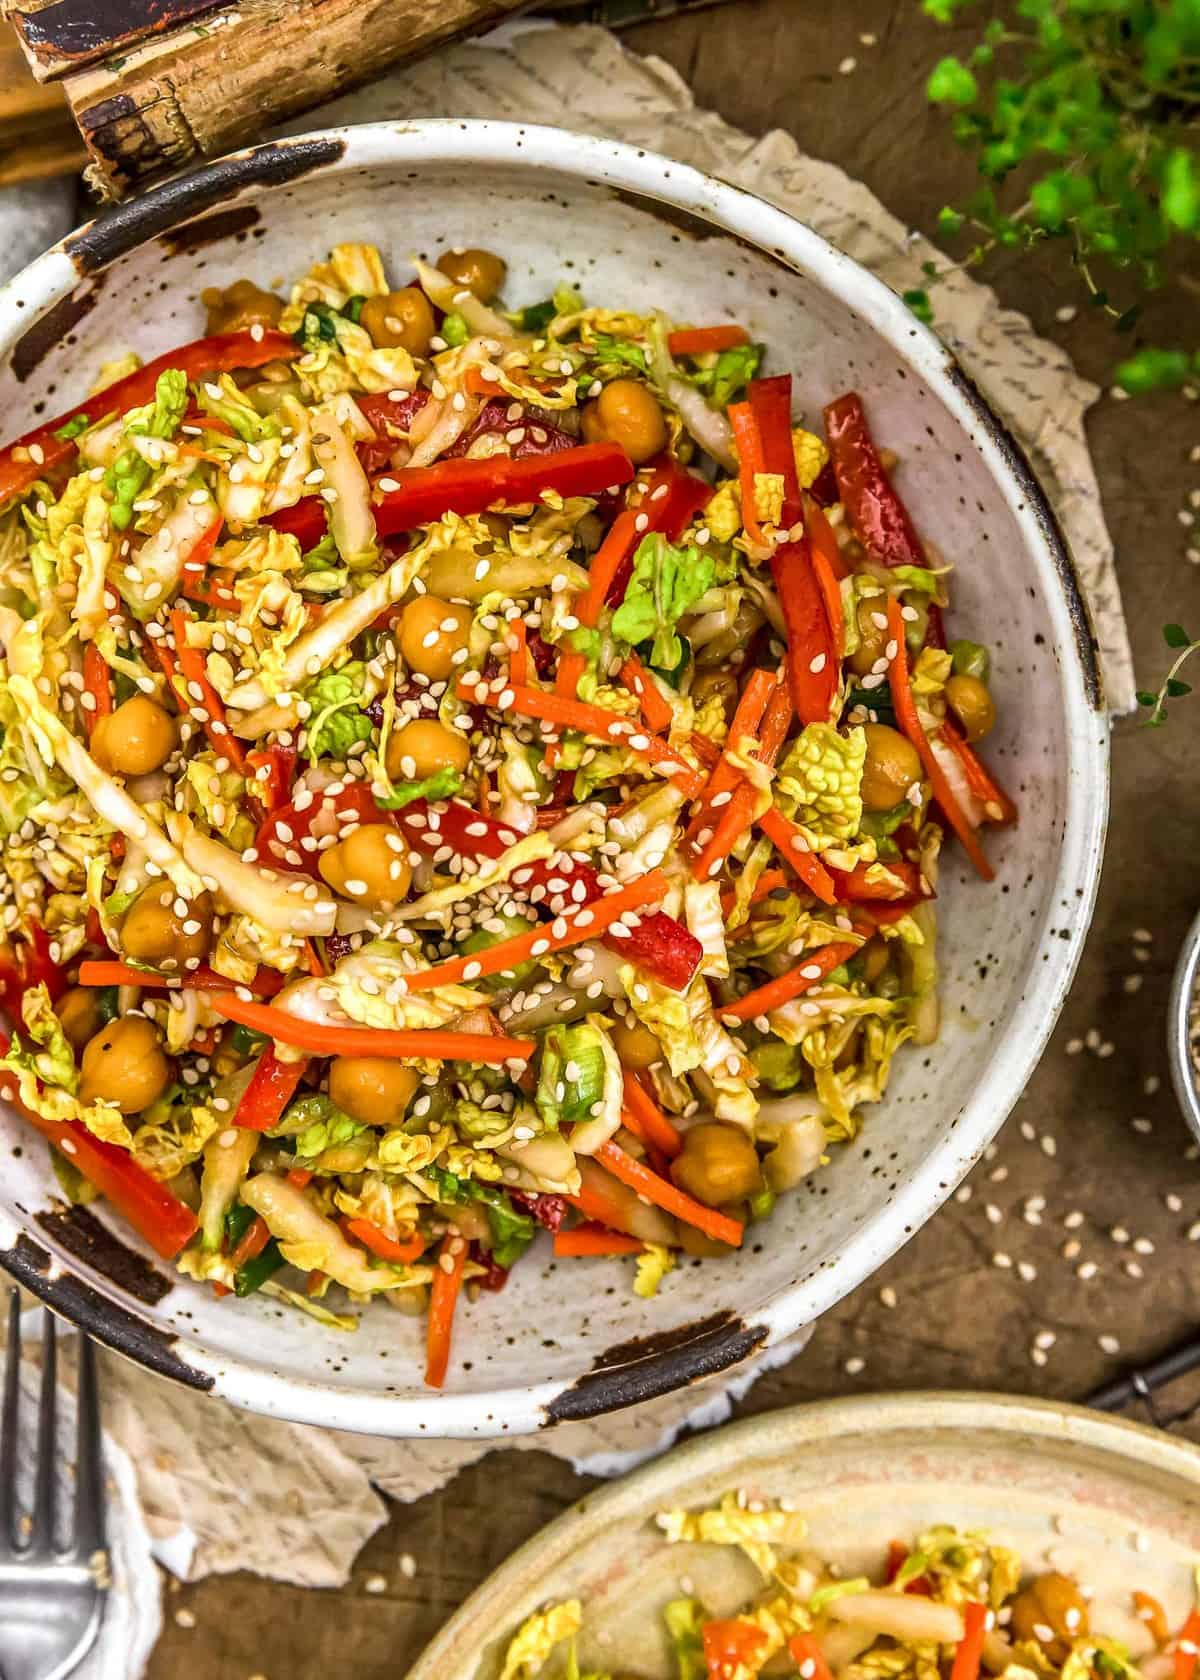 Spicy Glazed Chickpea Napa Cabbage Salad in a bowl